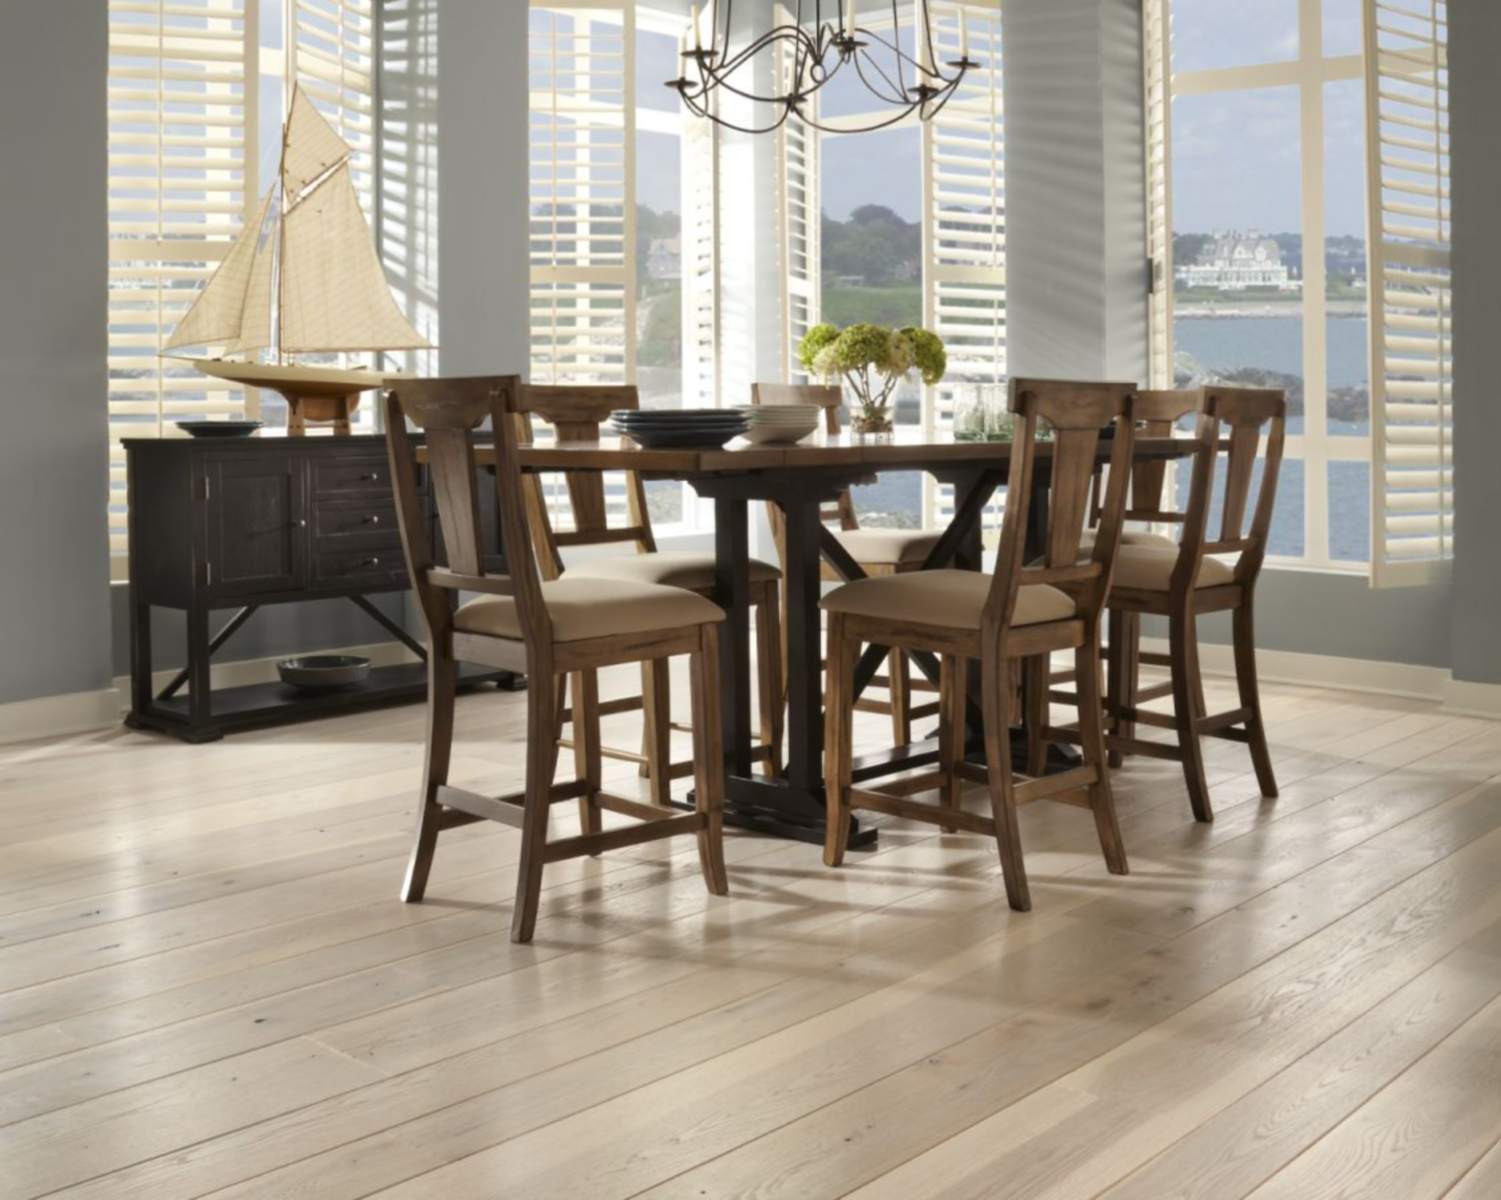 hardwood flooring company name ideas of top 5 brands for solid hardwood flooring throughout a dining room with carlisle hickorys wide plank flooring